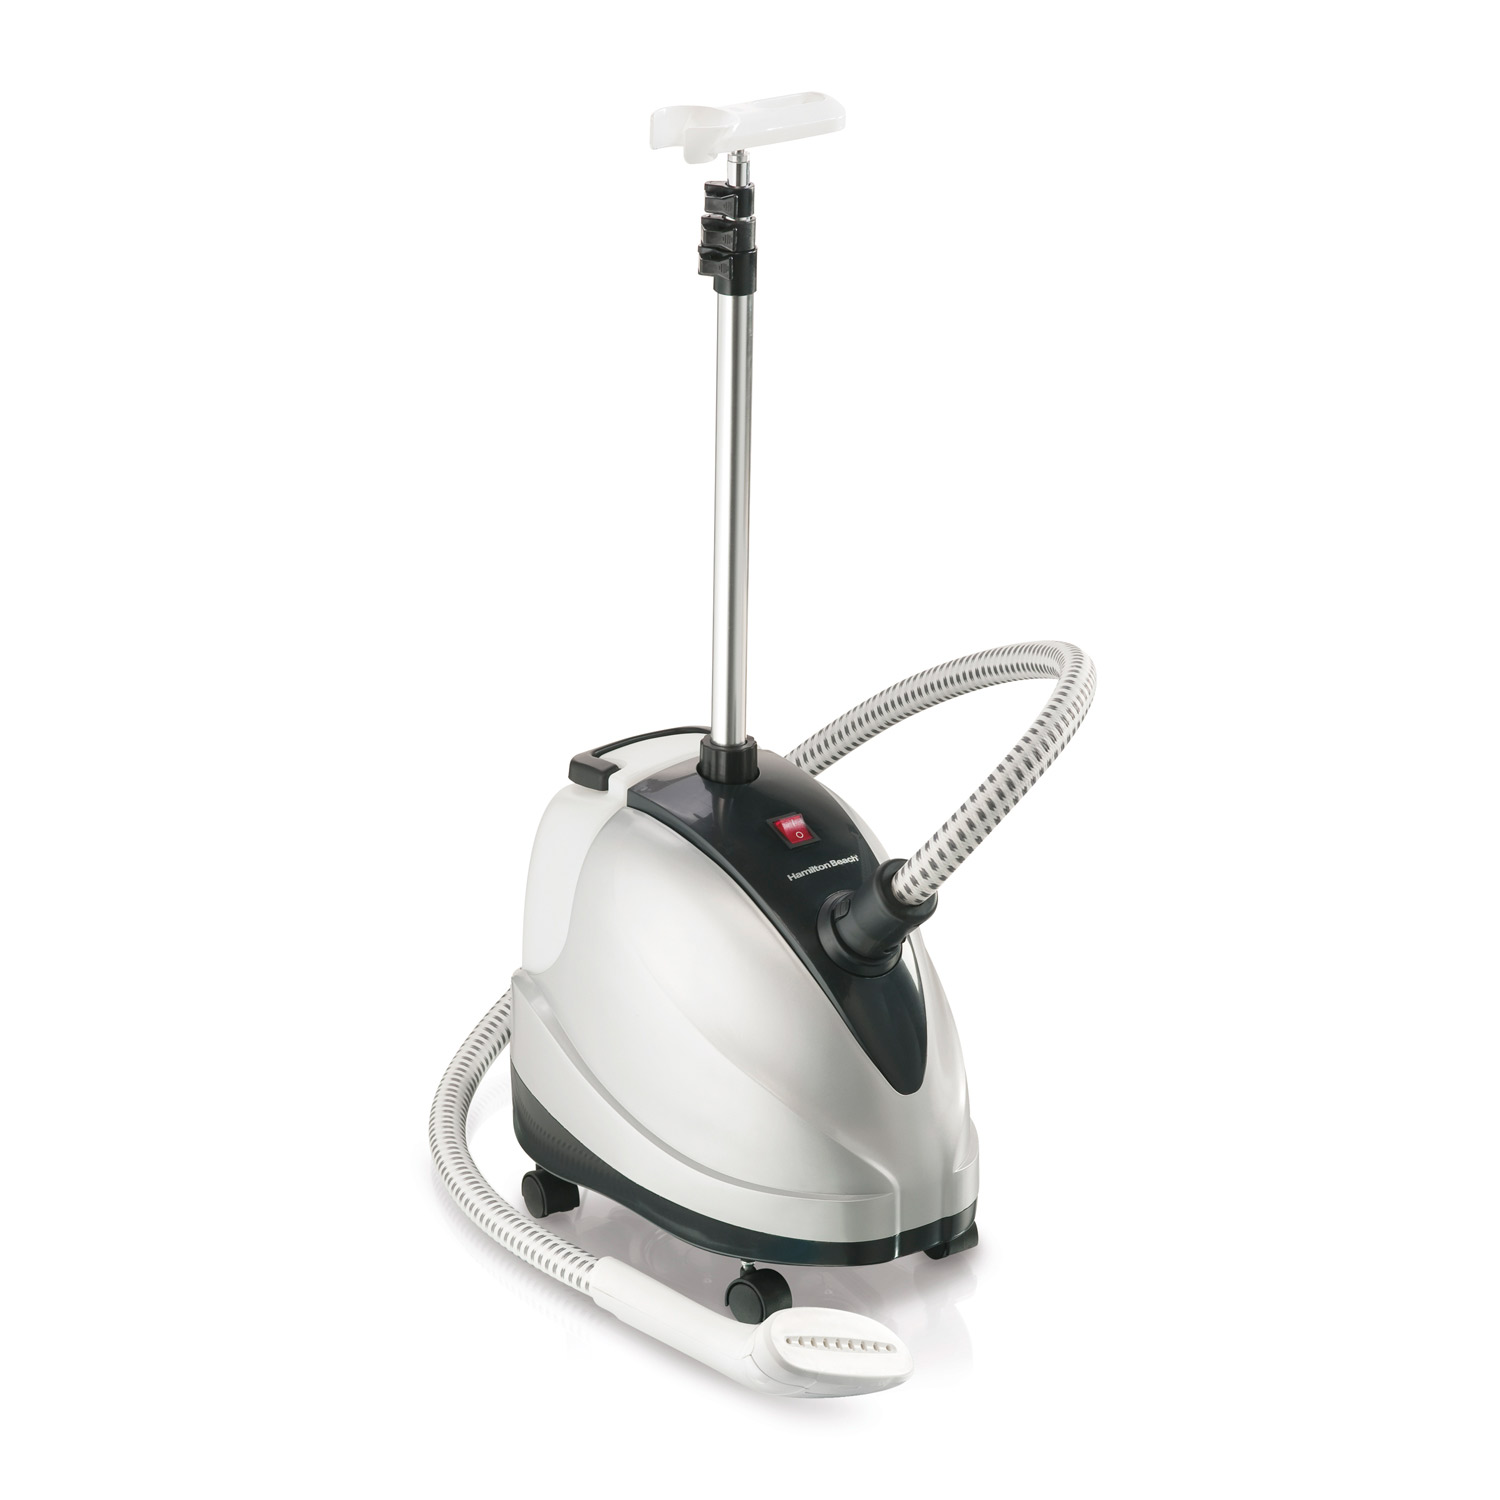 Spend less on dry cleaning with the Full-Size Garment Steamer